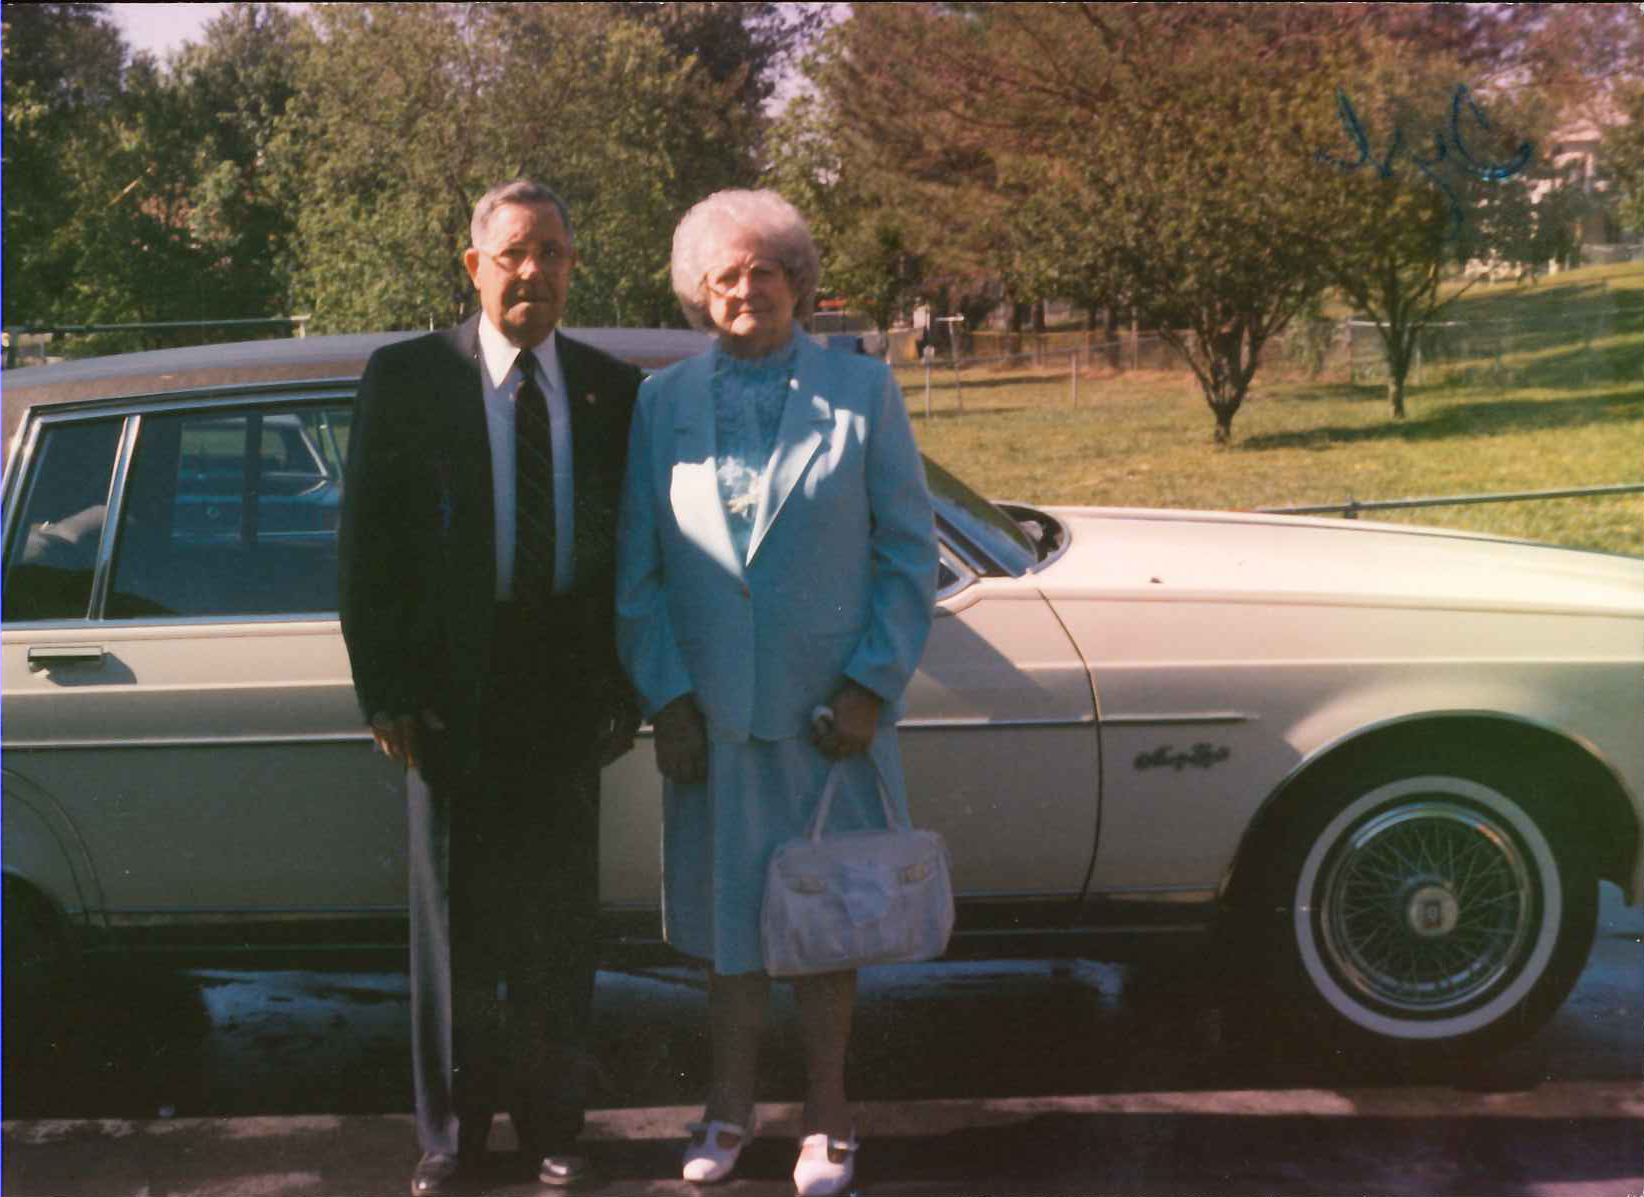 Photo of Hubert and Esther Taubert in Fentress County, TN.